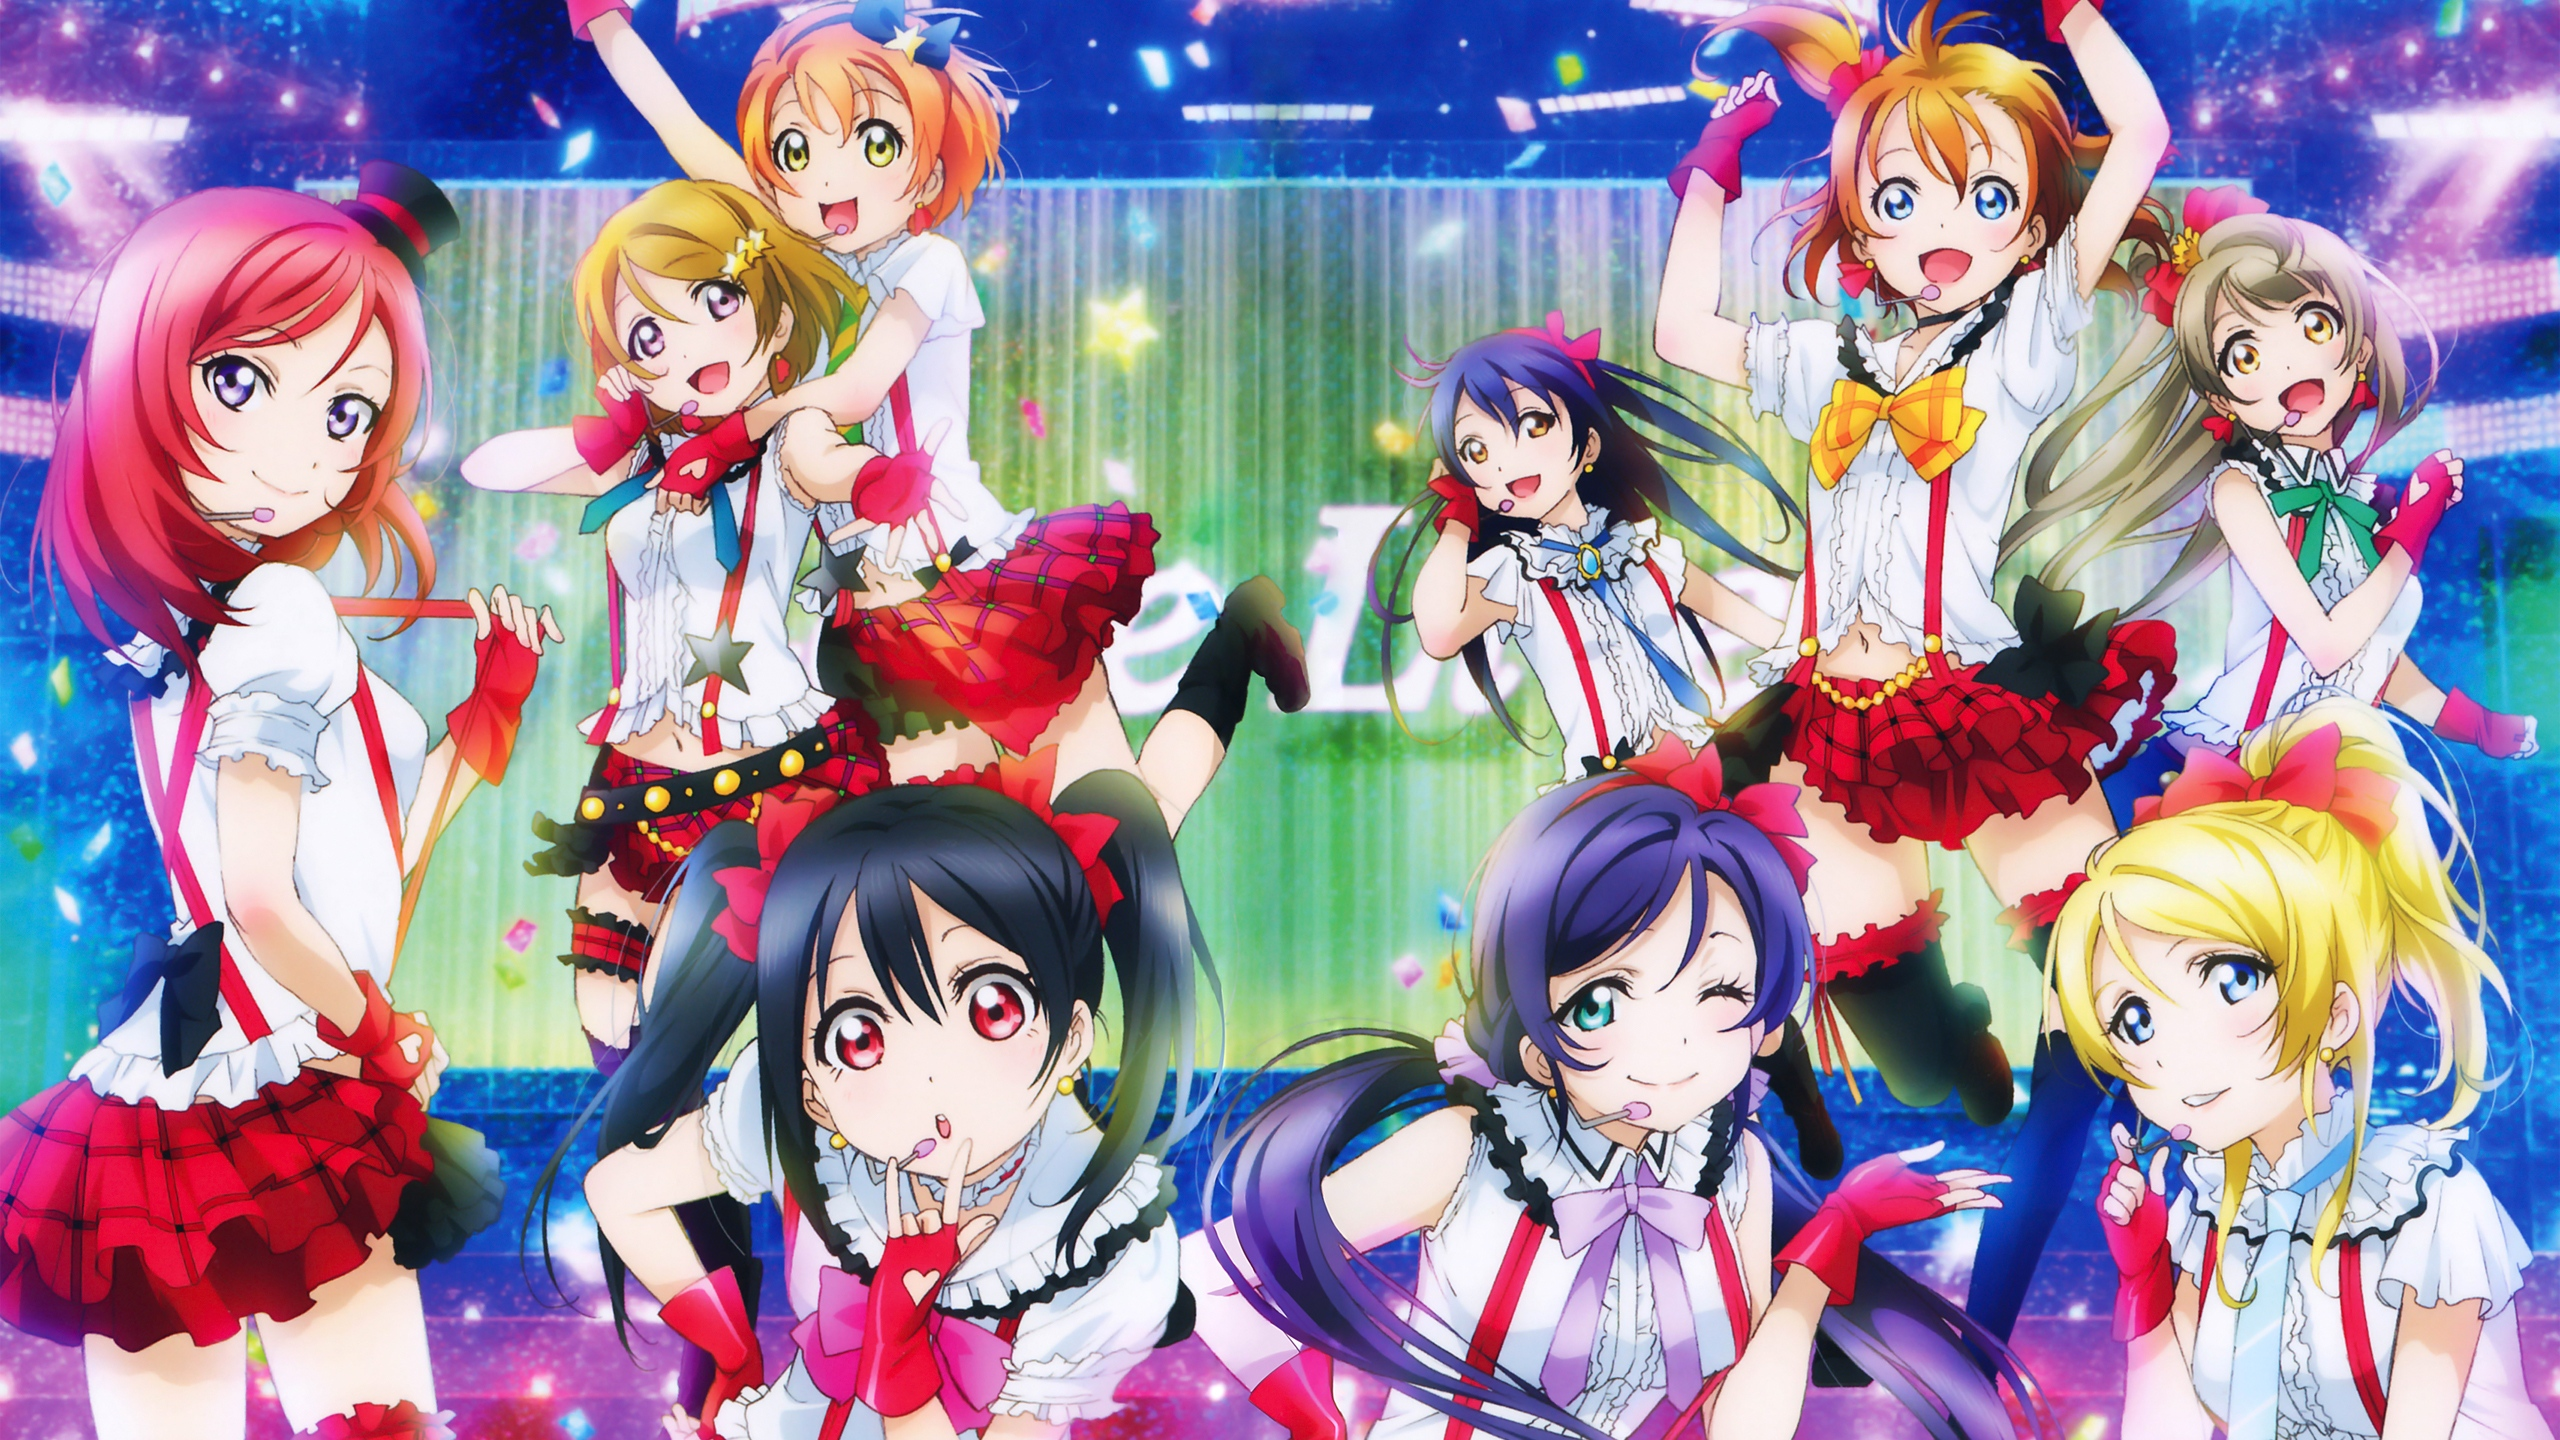 Cj cj cj cj cj cj cj cj cj cj cj cj cj cj cj cj cj cj cj cj cj cj cj cj cj cj cj cj cj cj cj cj cj cj cj cj cj cj cj cj cj cj cj cj. Love!Live! - Anime Wallpapers HD 4K Download For Mobile ...